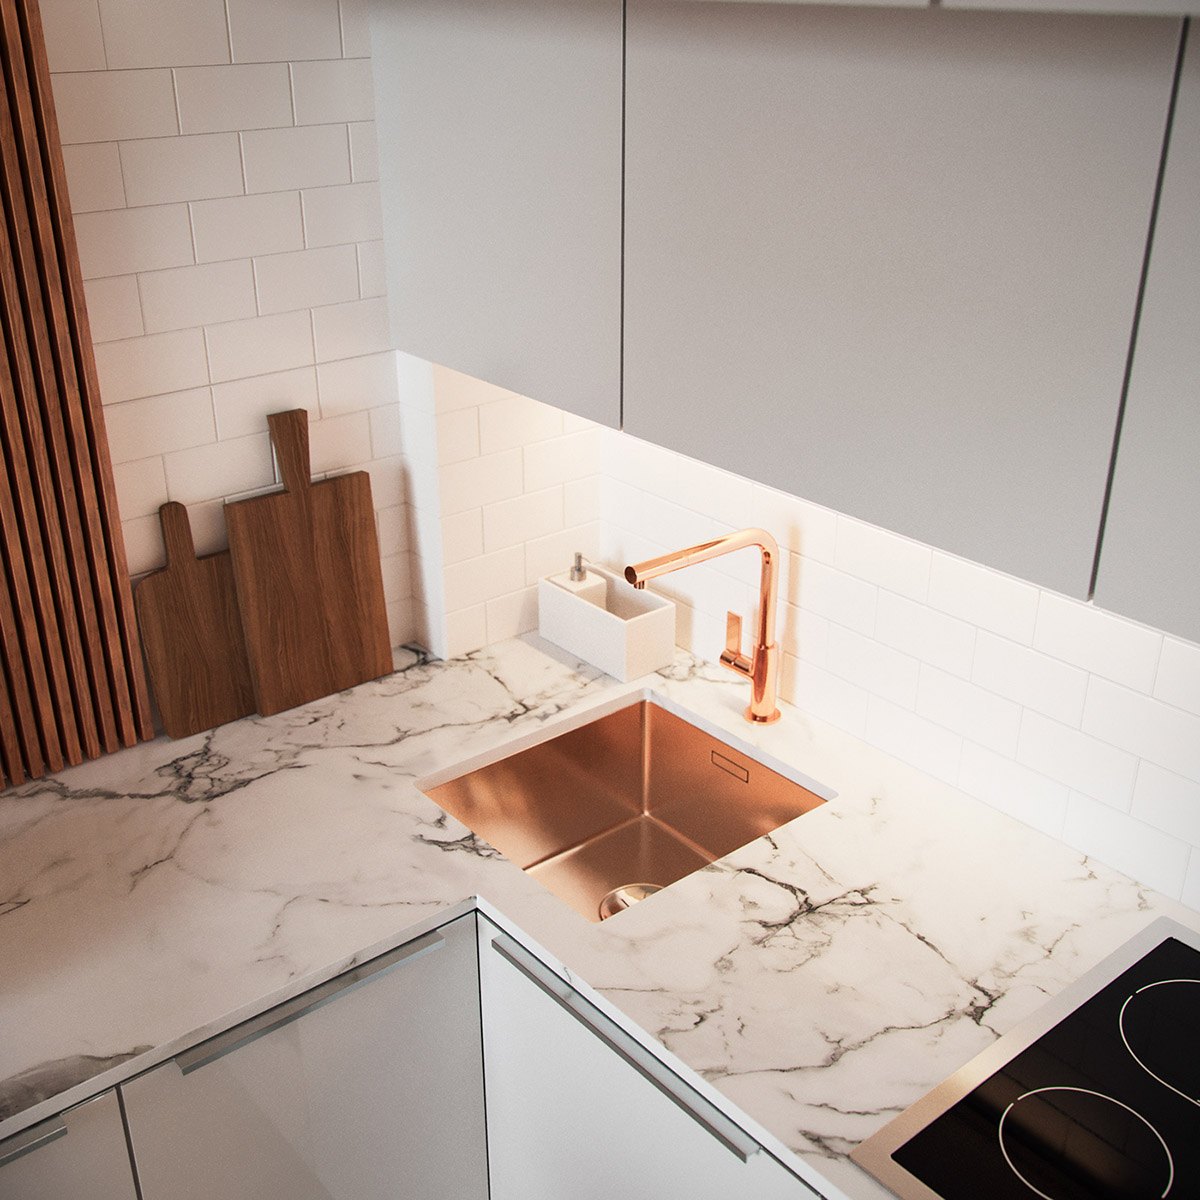 Apartment Kitchen Sink Backing Up: Stepping Up Studio Apartments